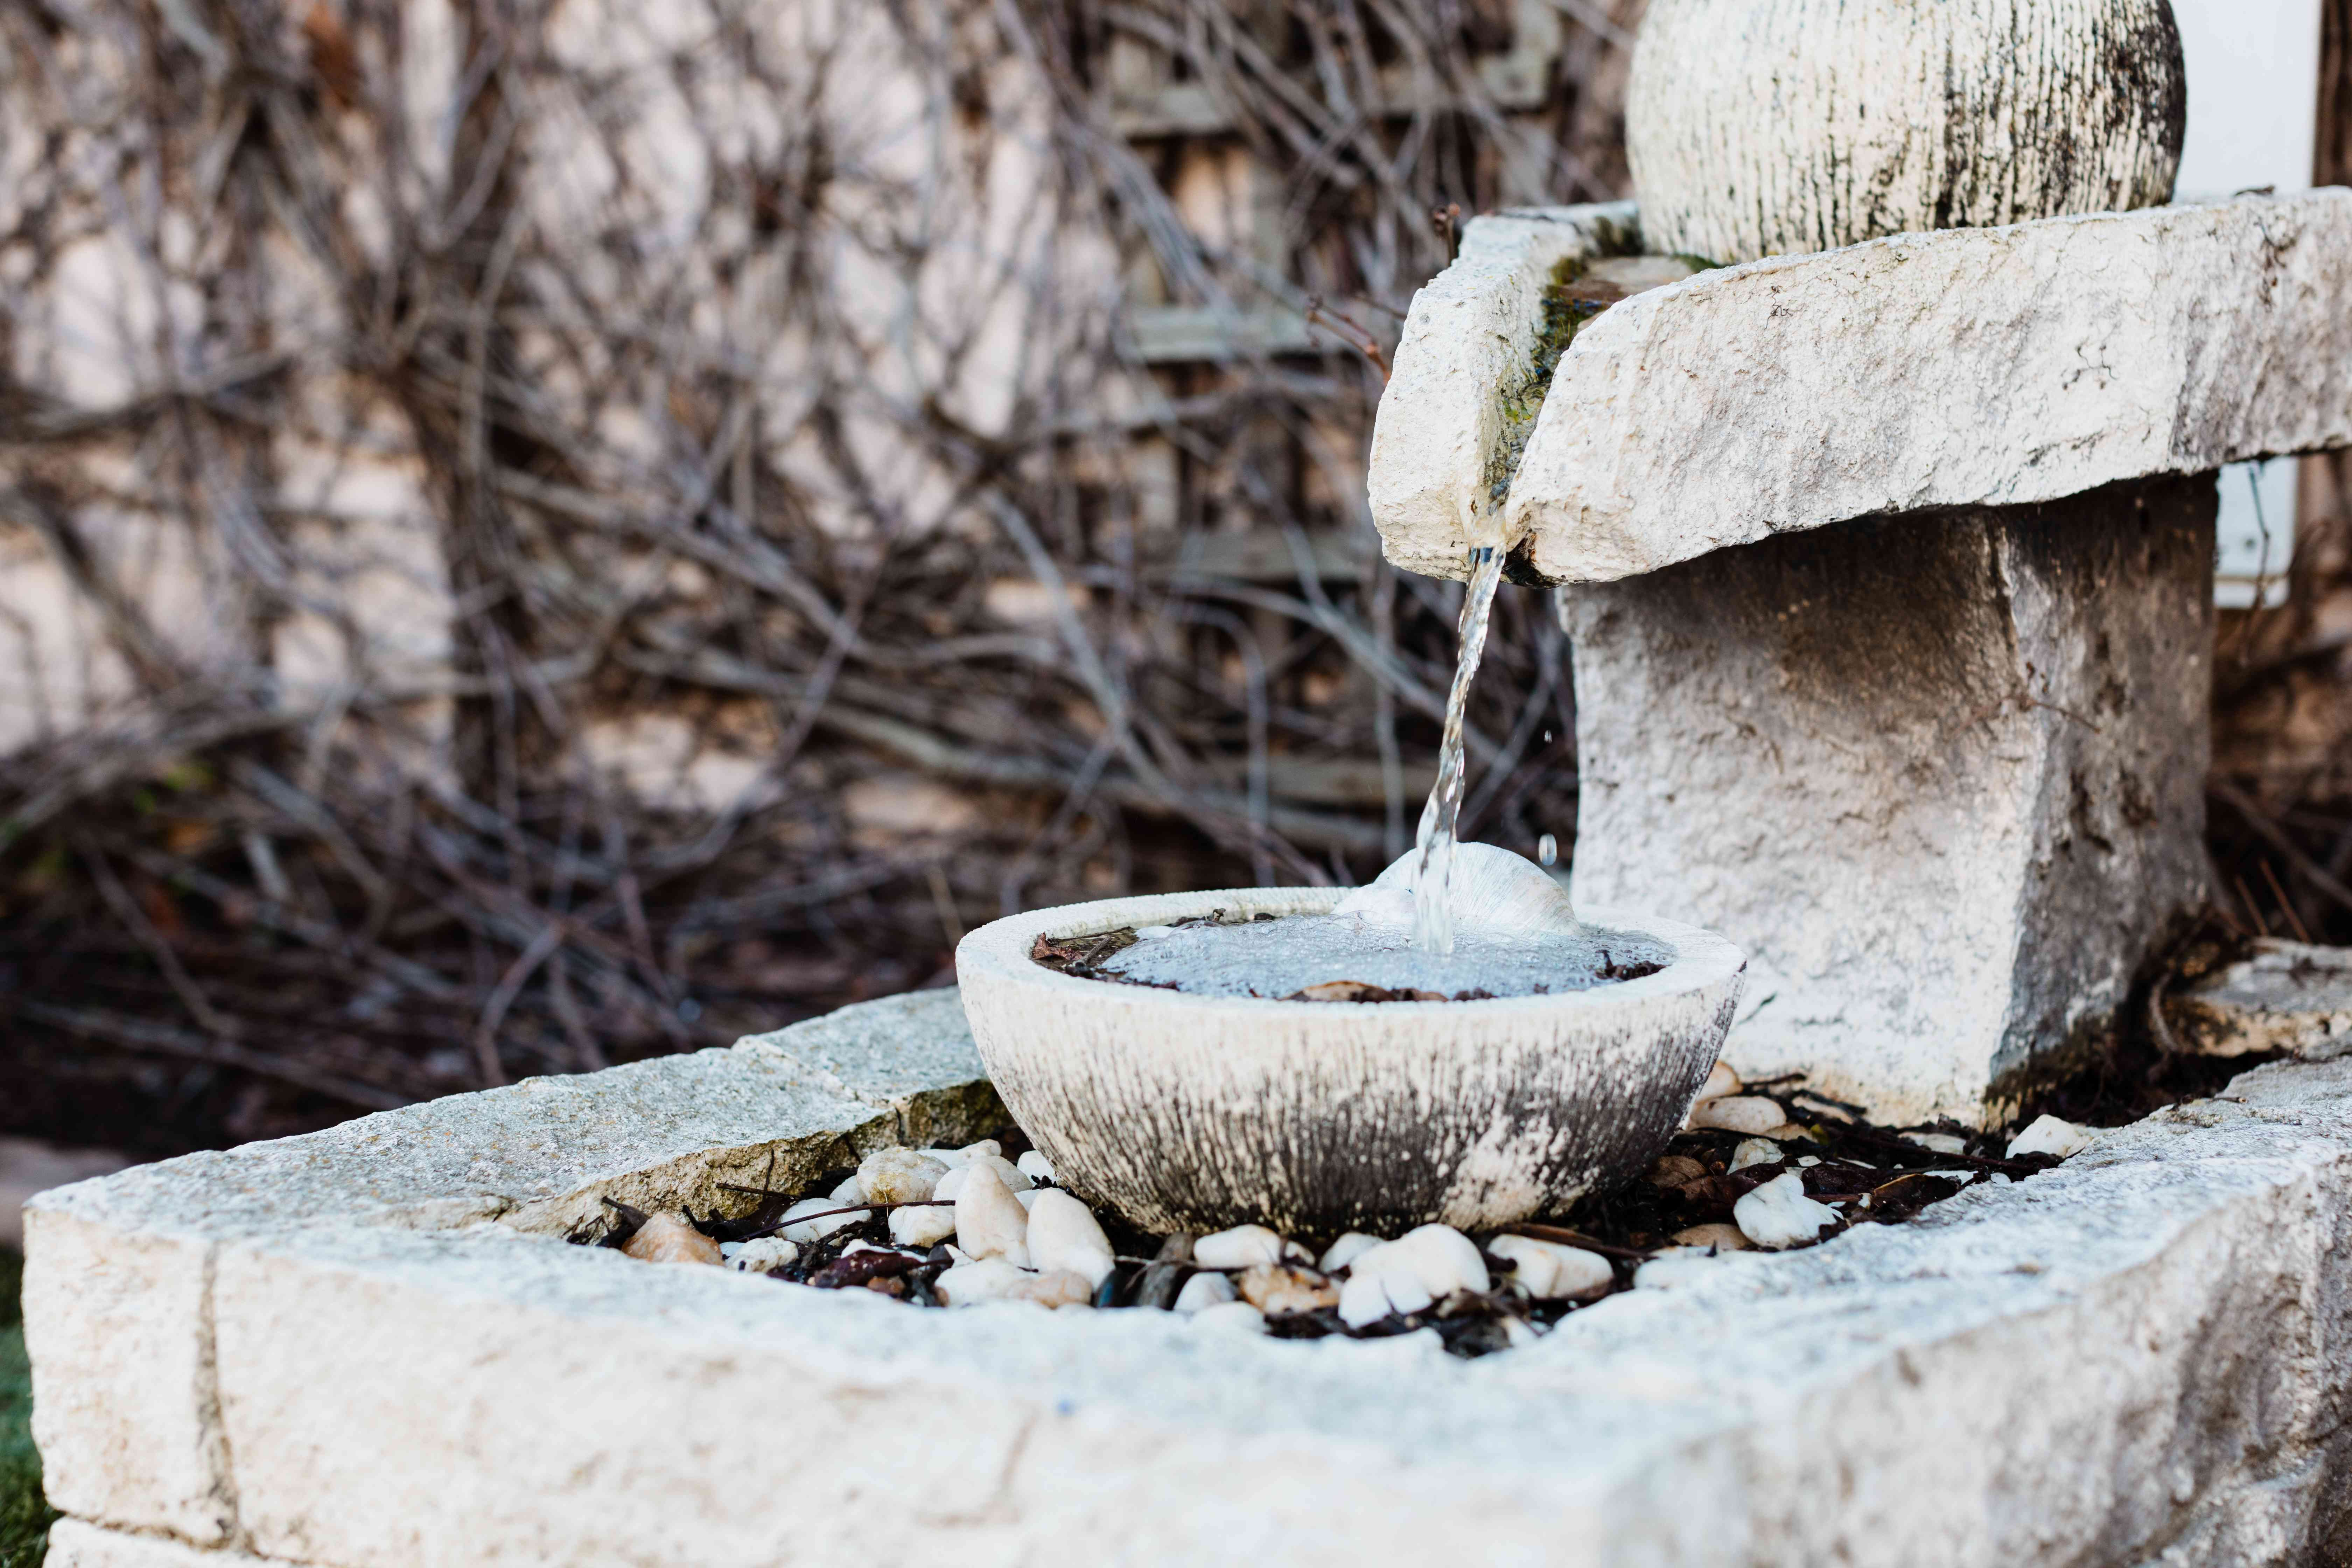 Decorative water fountain with treated water to prevent mosquitos